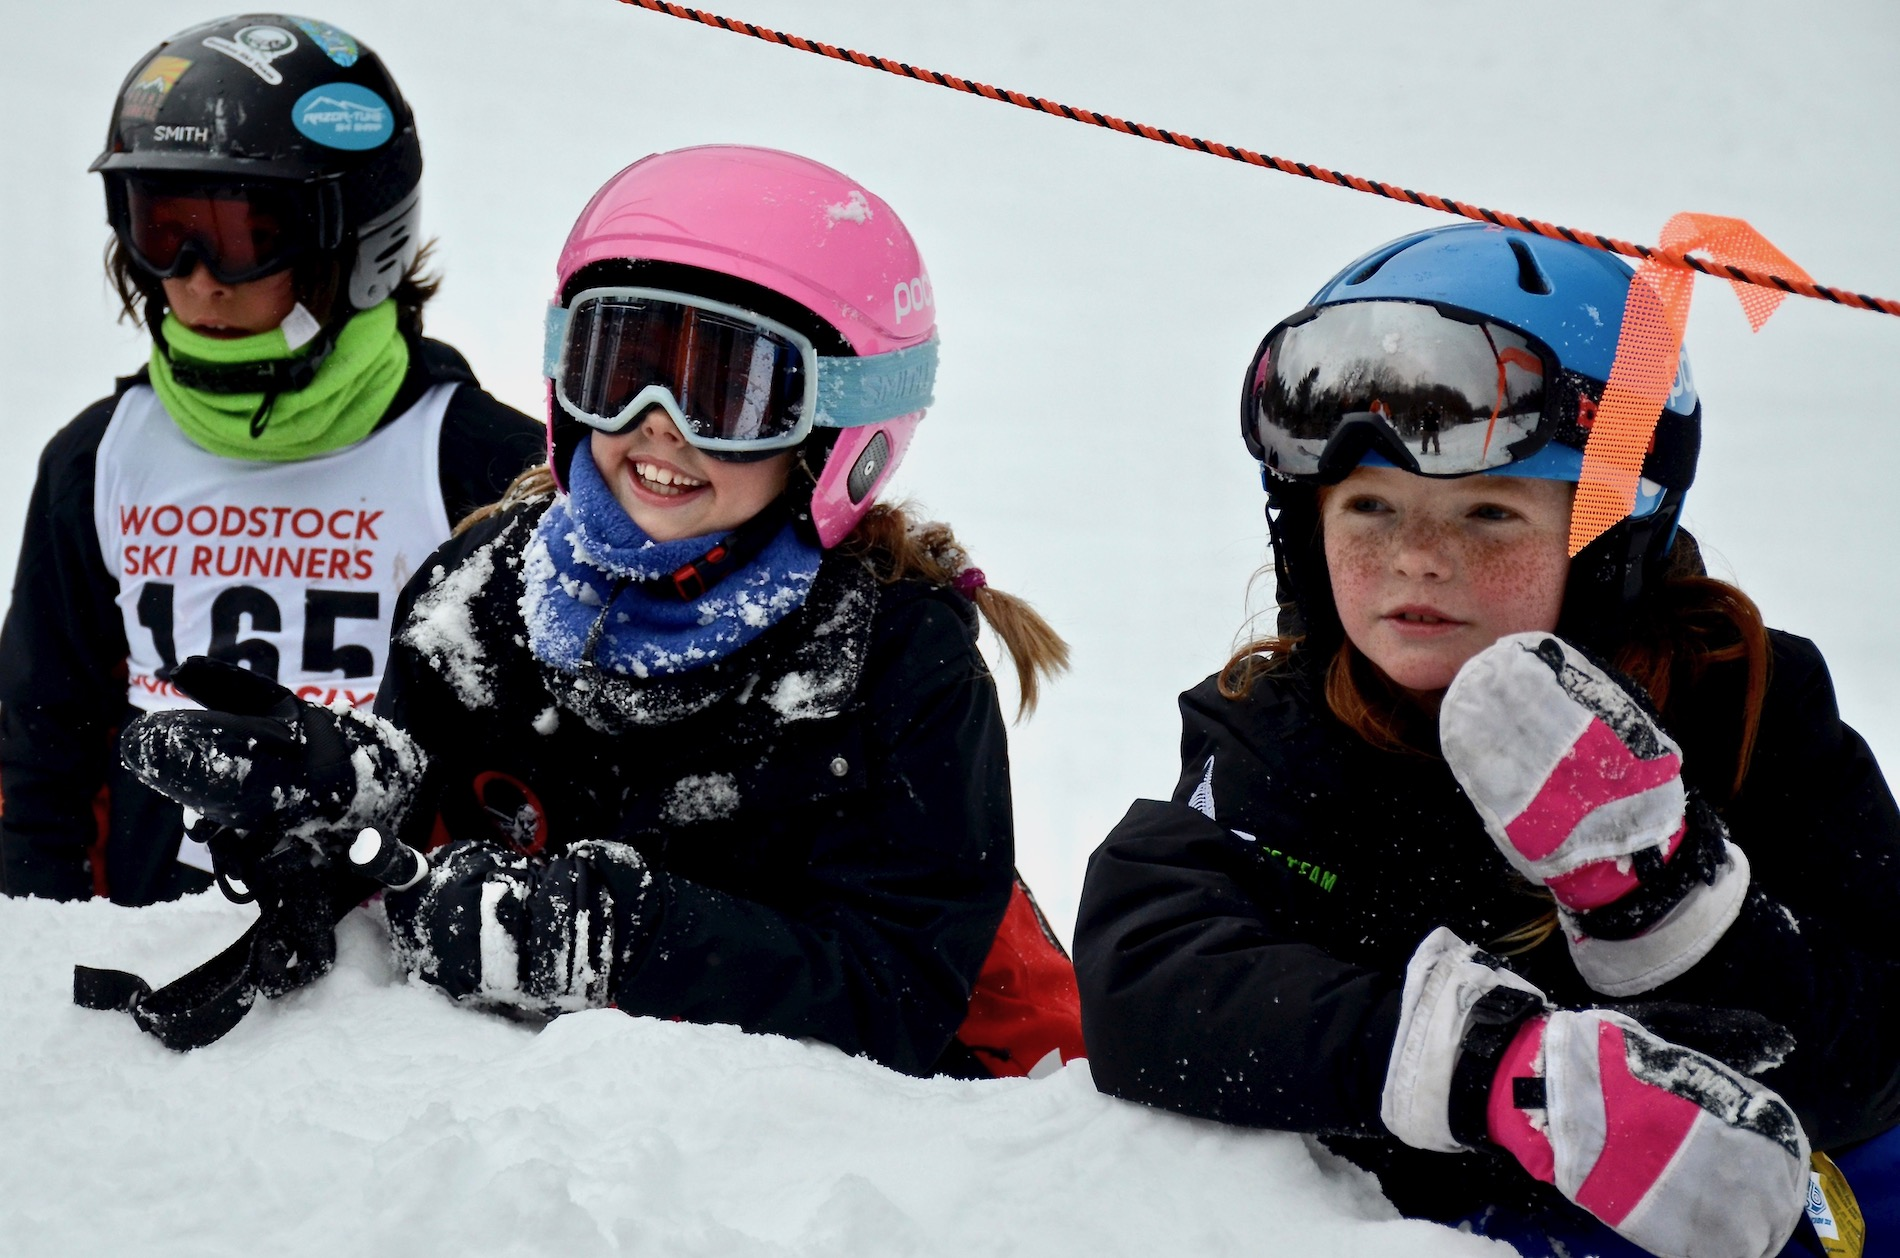 All the kids had a blast watching the terrain park portion of the day.